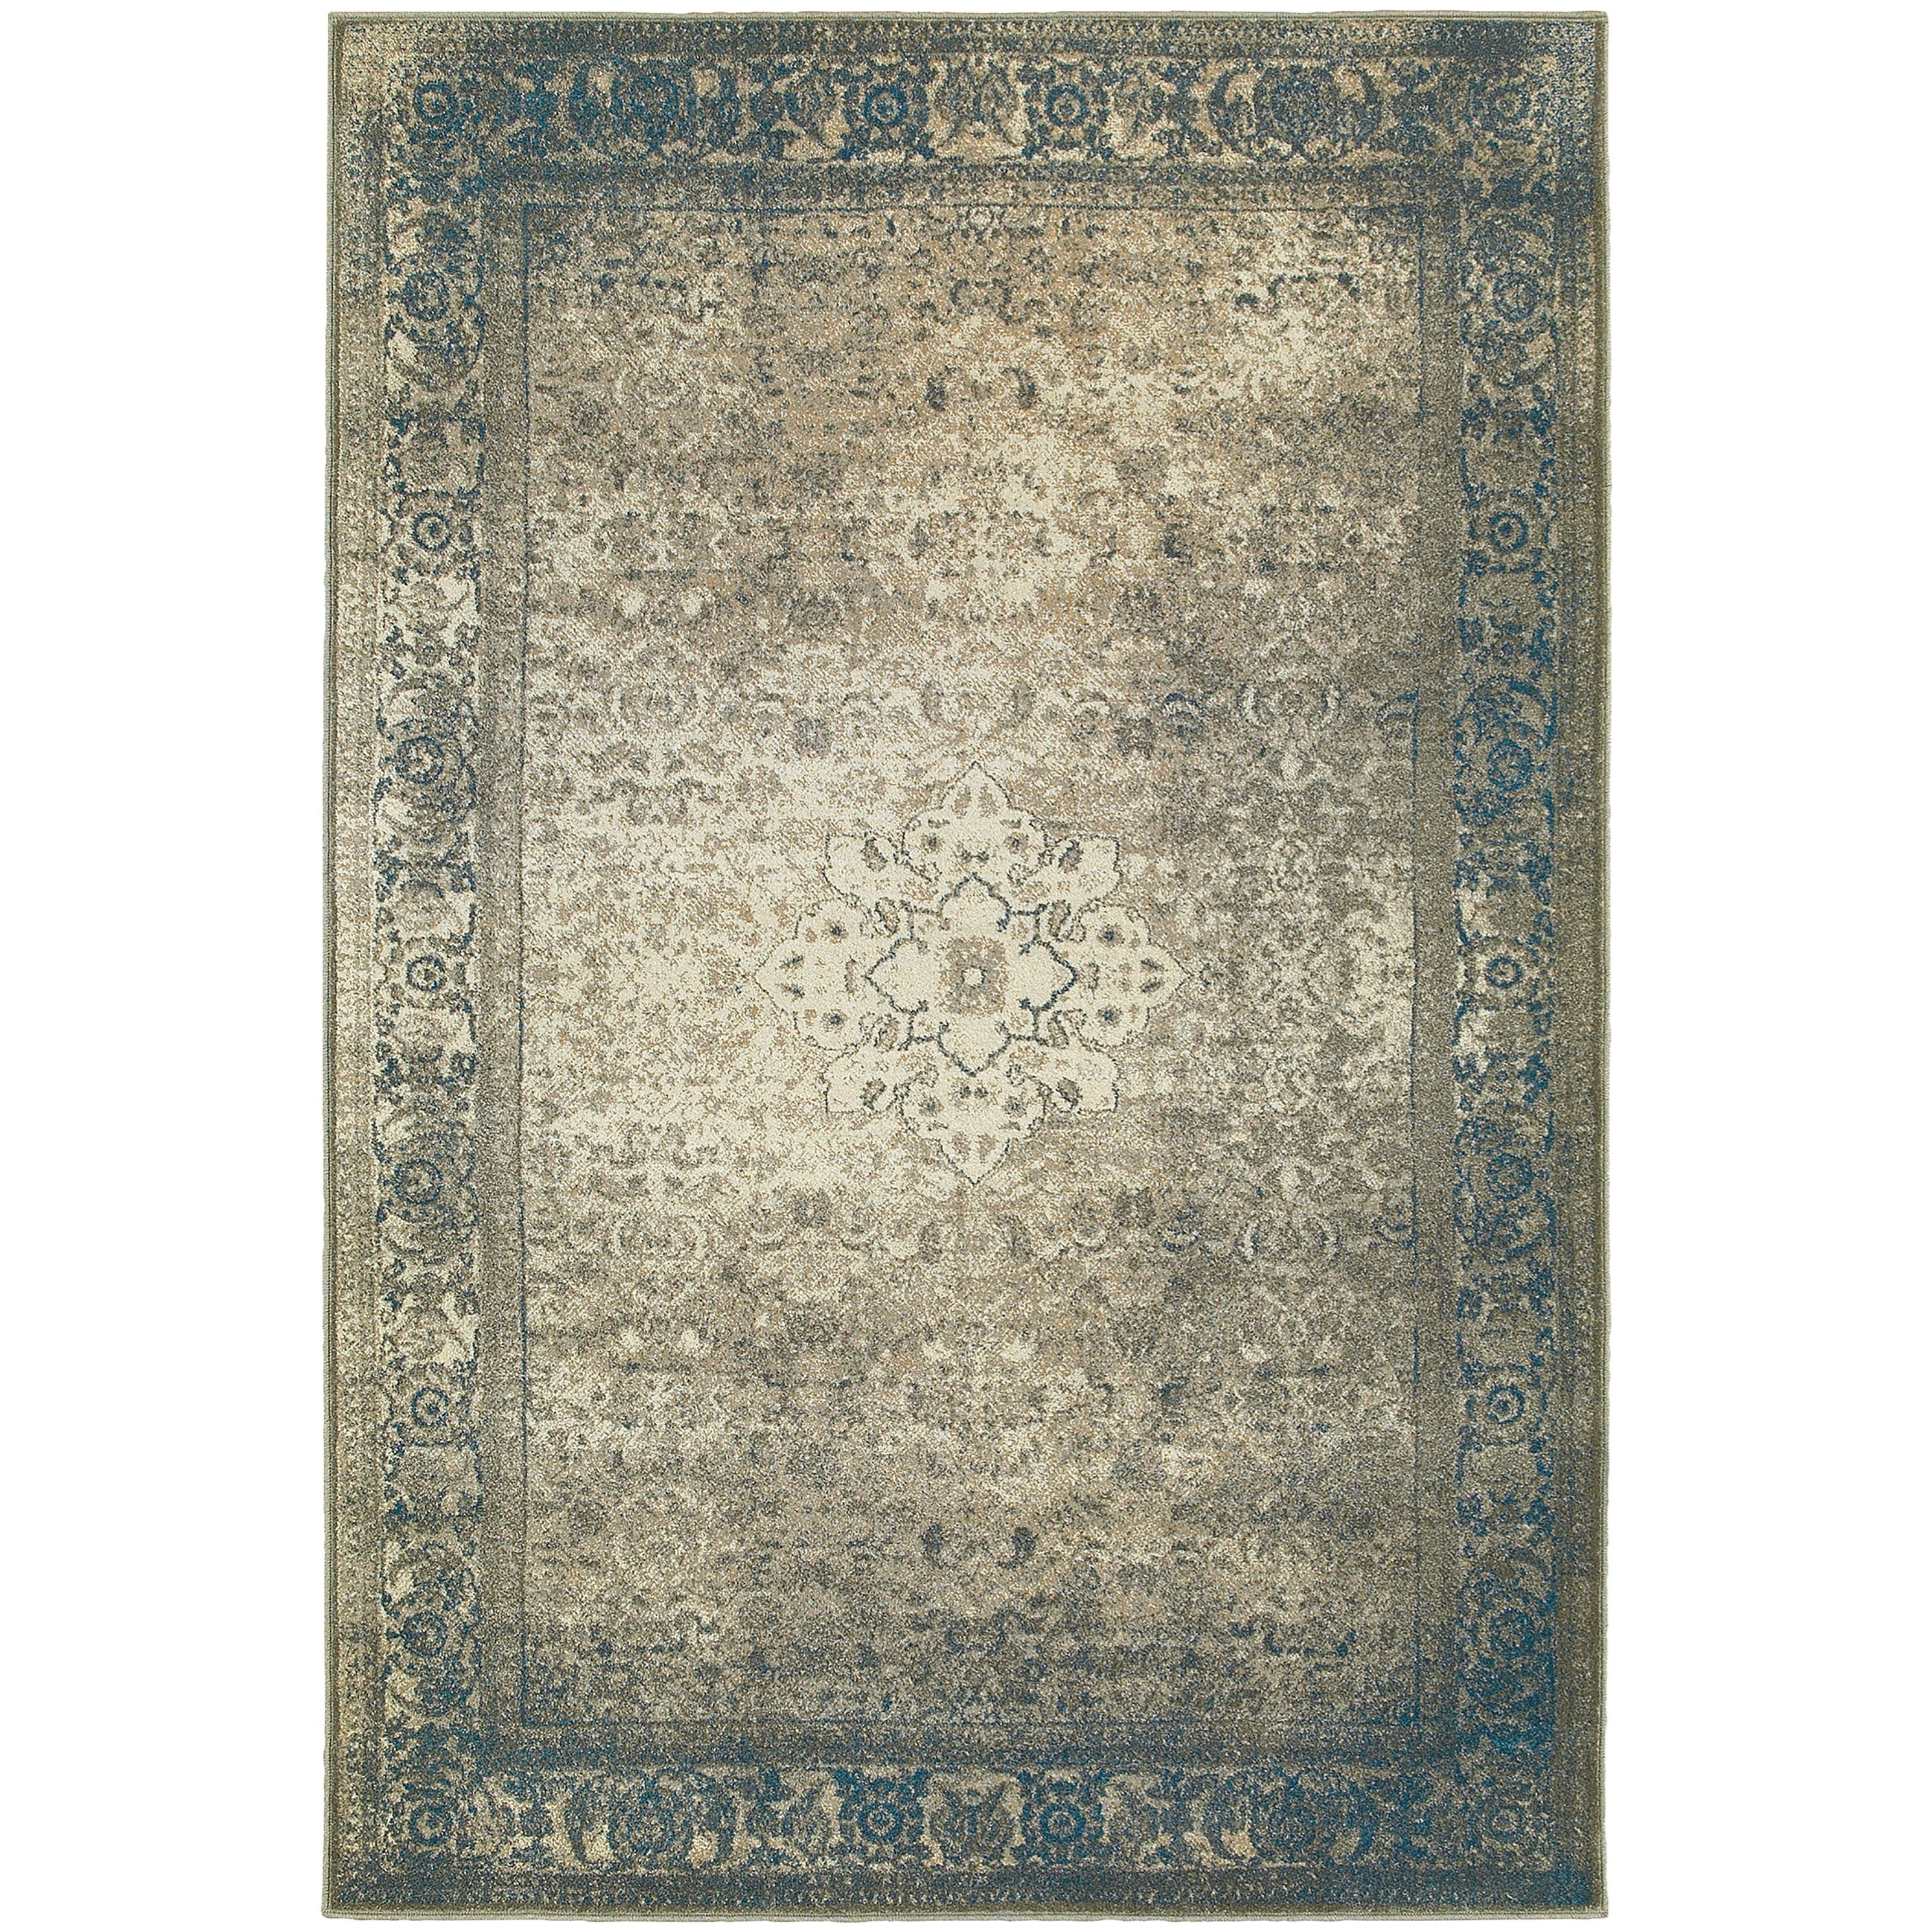 "Pasha 9'10"" X 12'10"" Rectangle Area Rug by Oriental Weavers at Steger's Furniture"